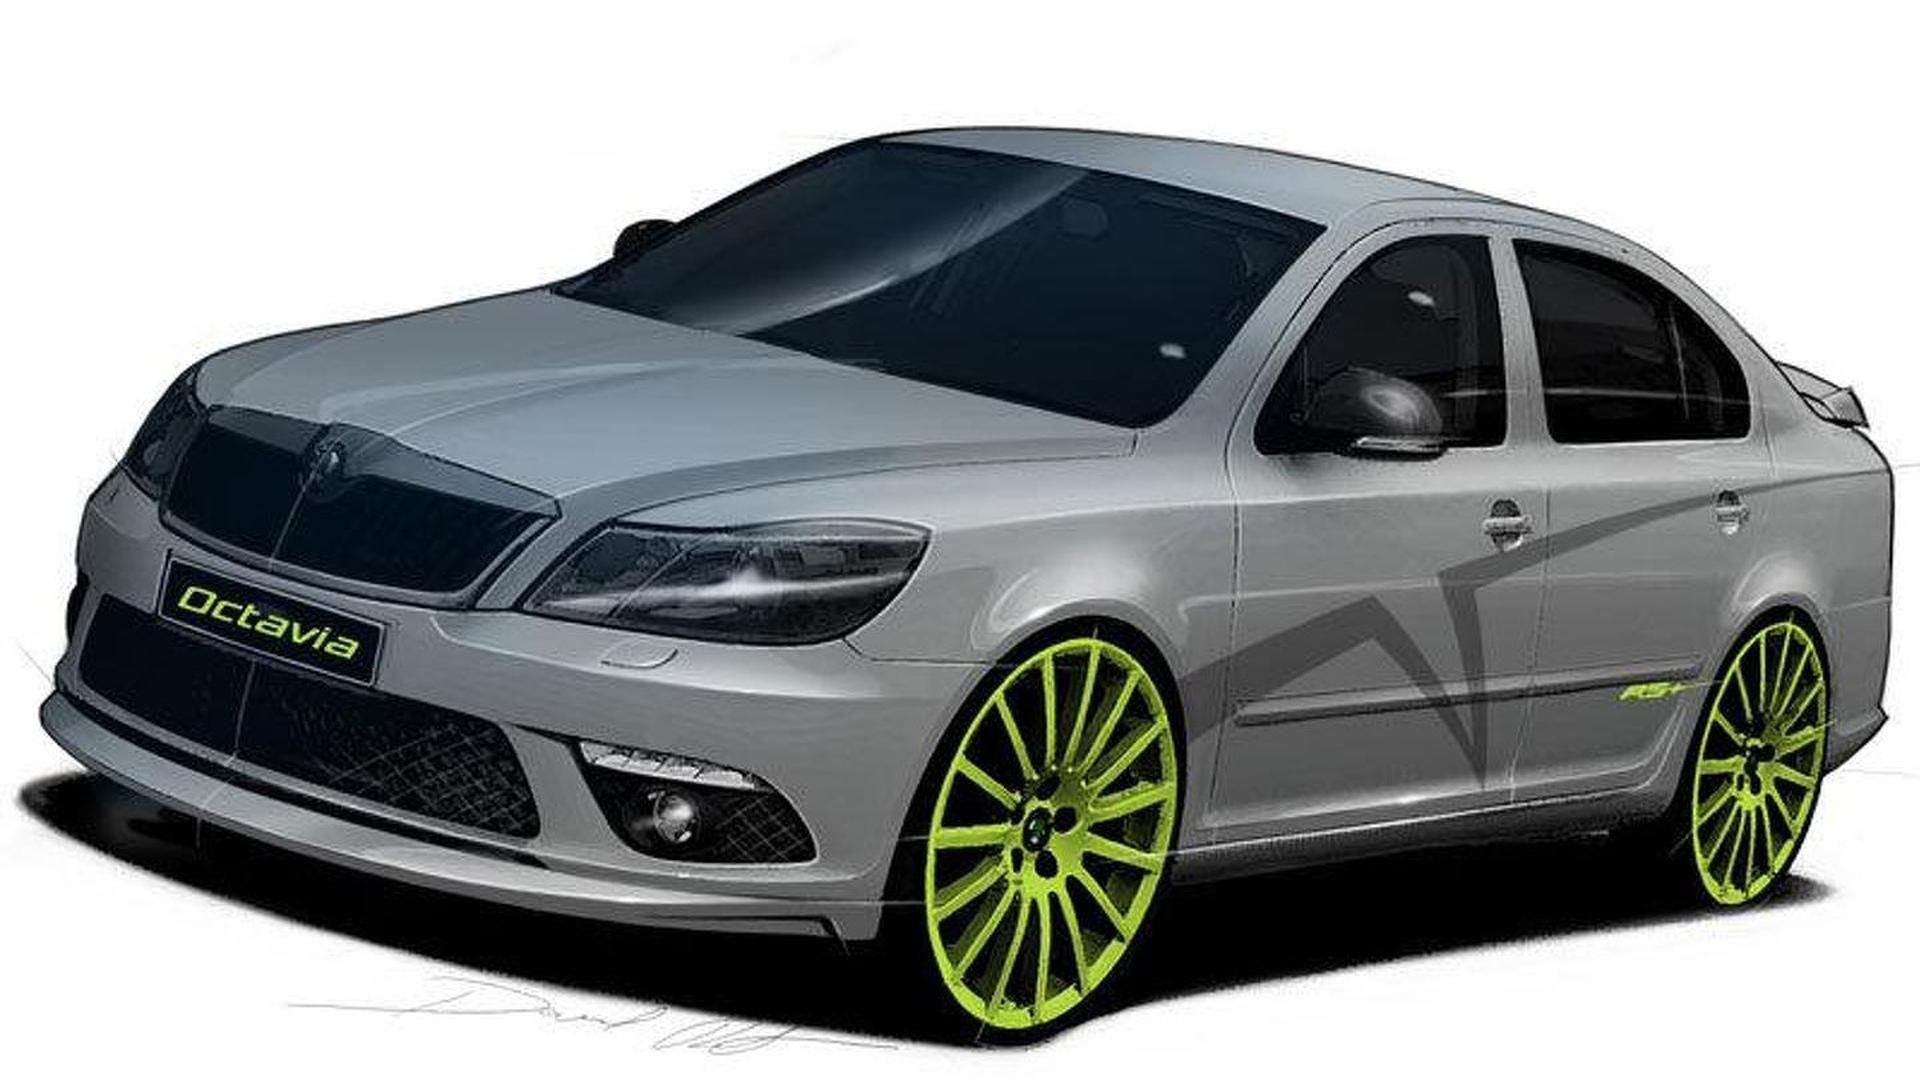 Skoda Fabia Rs And Octavia Rs Tuning Concepts To Be